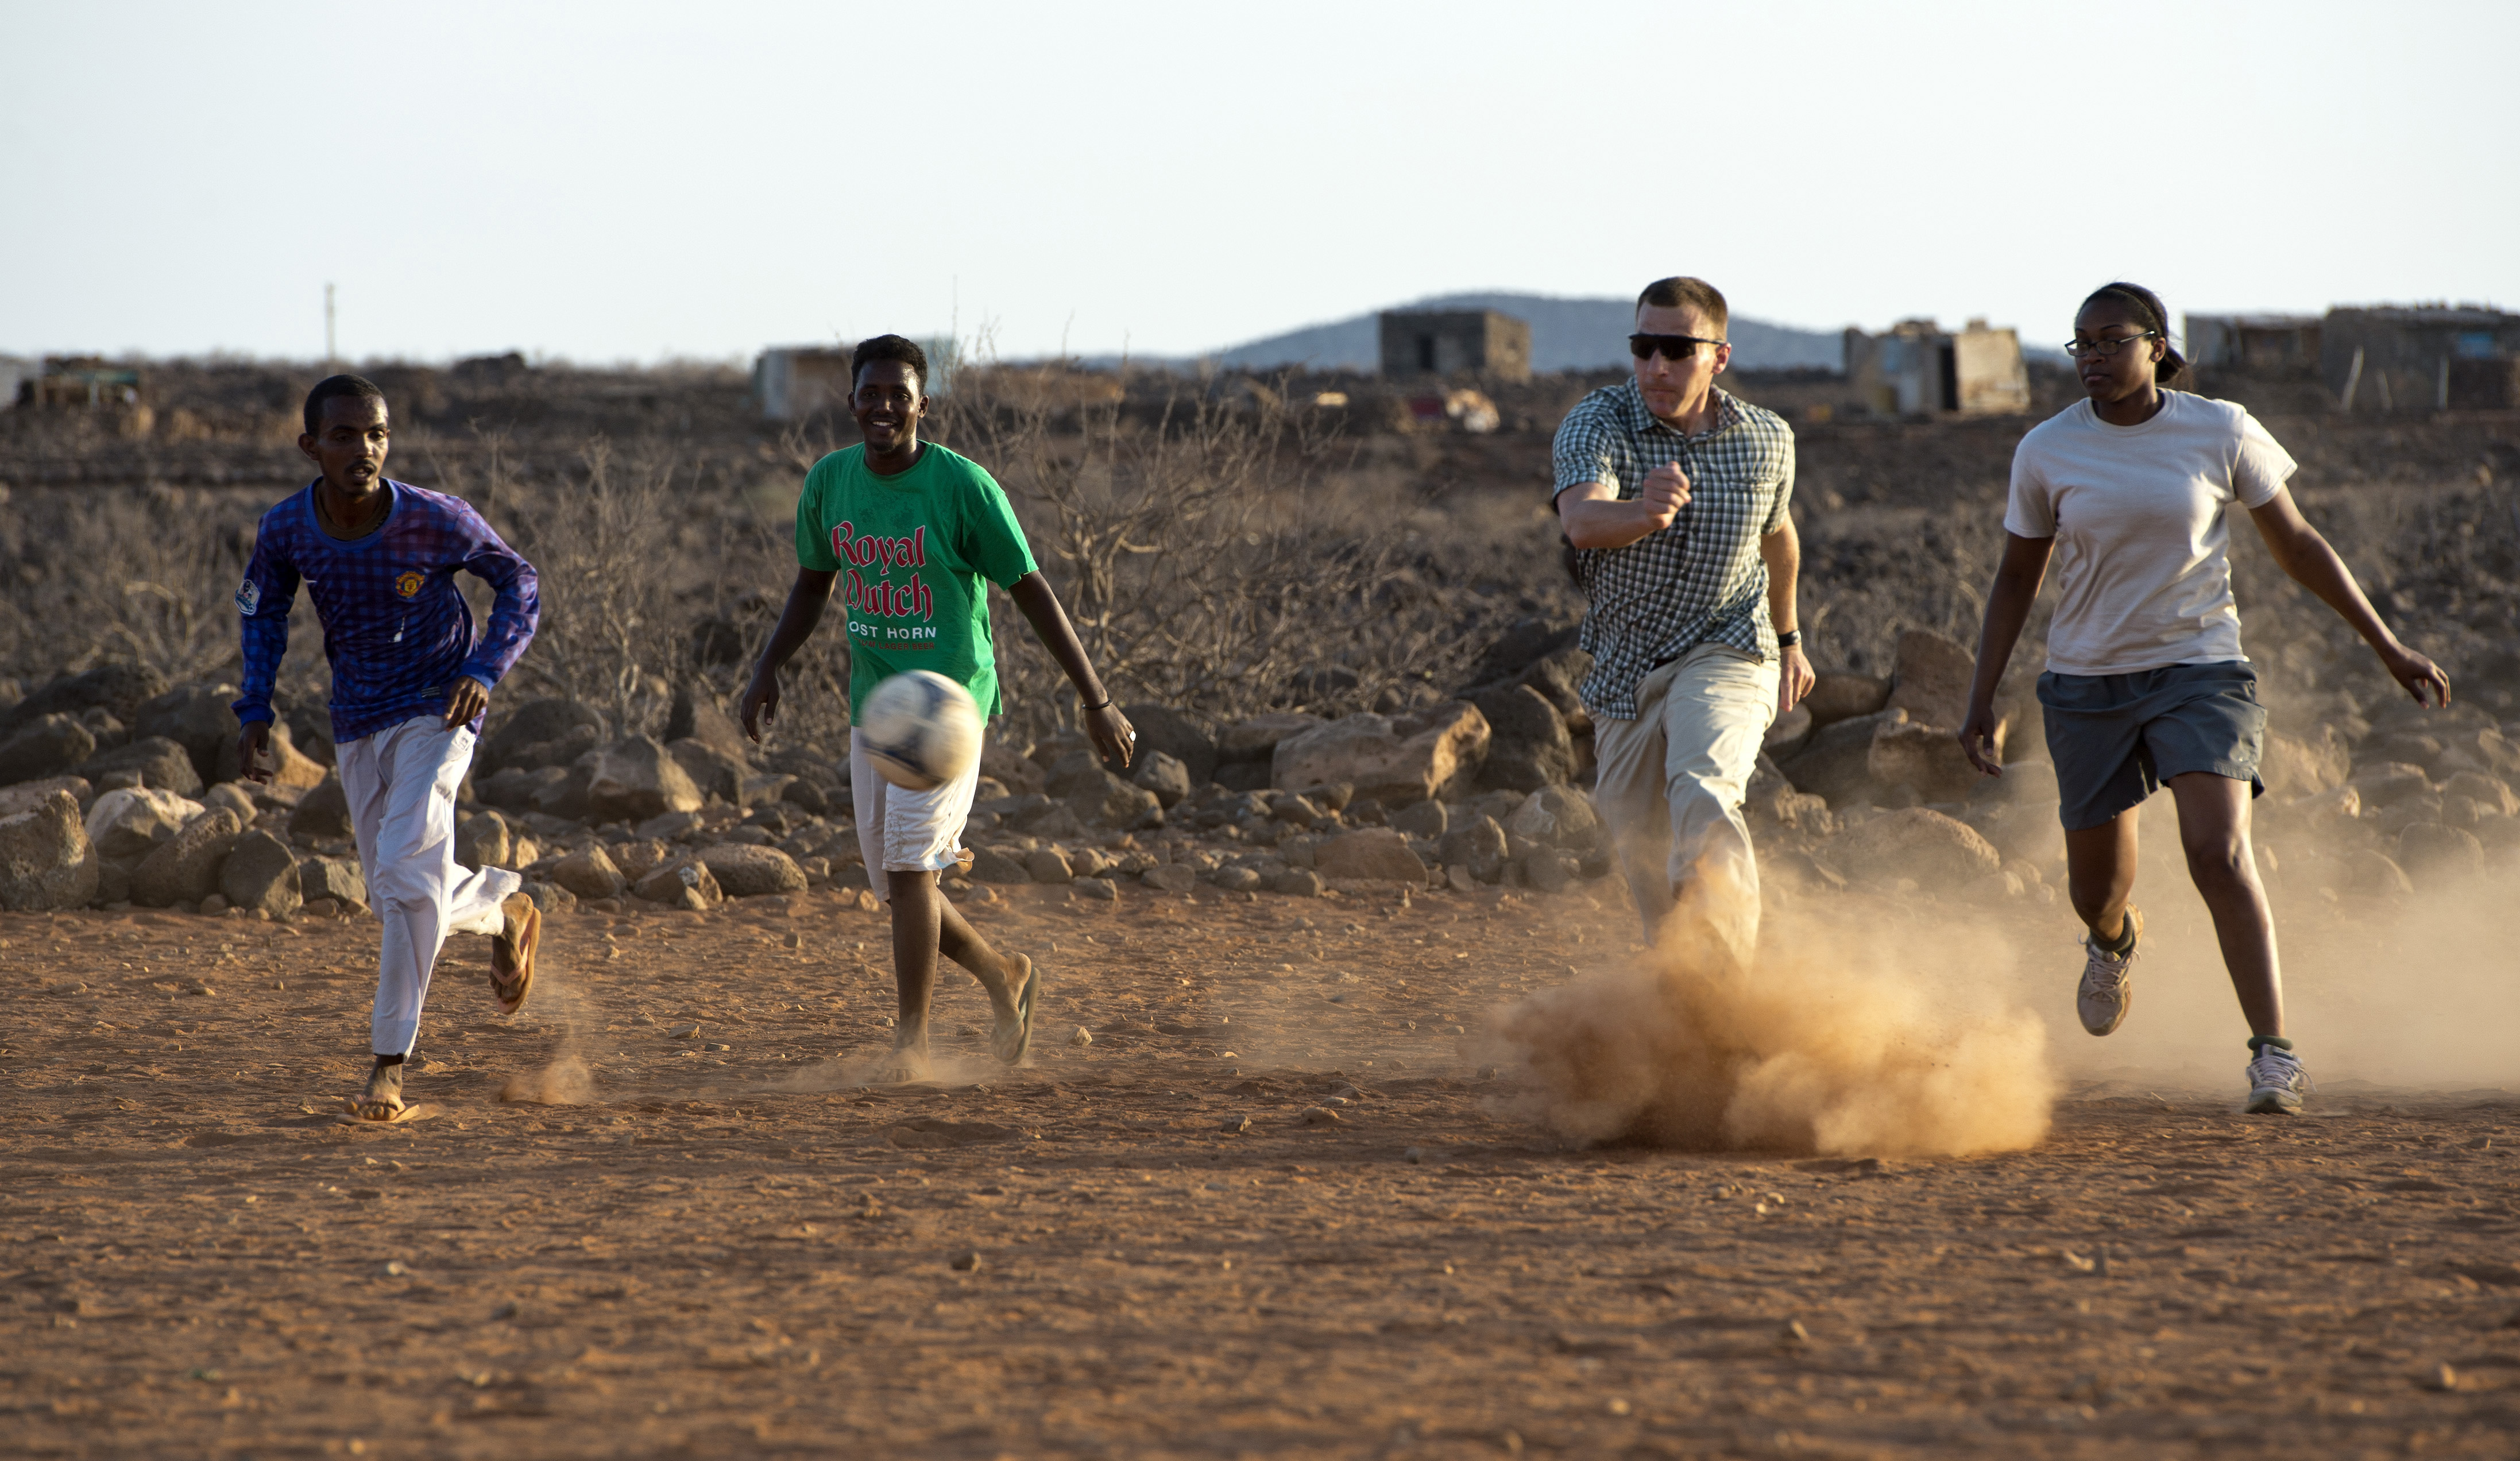 A player for the Combined Joint Task Force-Horn of Africa soccer team kicks the ball during the Chebelley Village Game Night soccer match at Chebelley Village, Djibouti, April 29, 2015. The game began in 2013 and is an event hosted by the U.S. Army's 404th Civil Affairs Battalion. (U.S. Air Force photo by Staff Sgt. Nathan Maysonet)